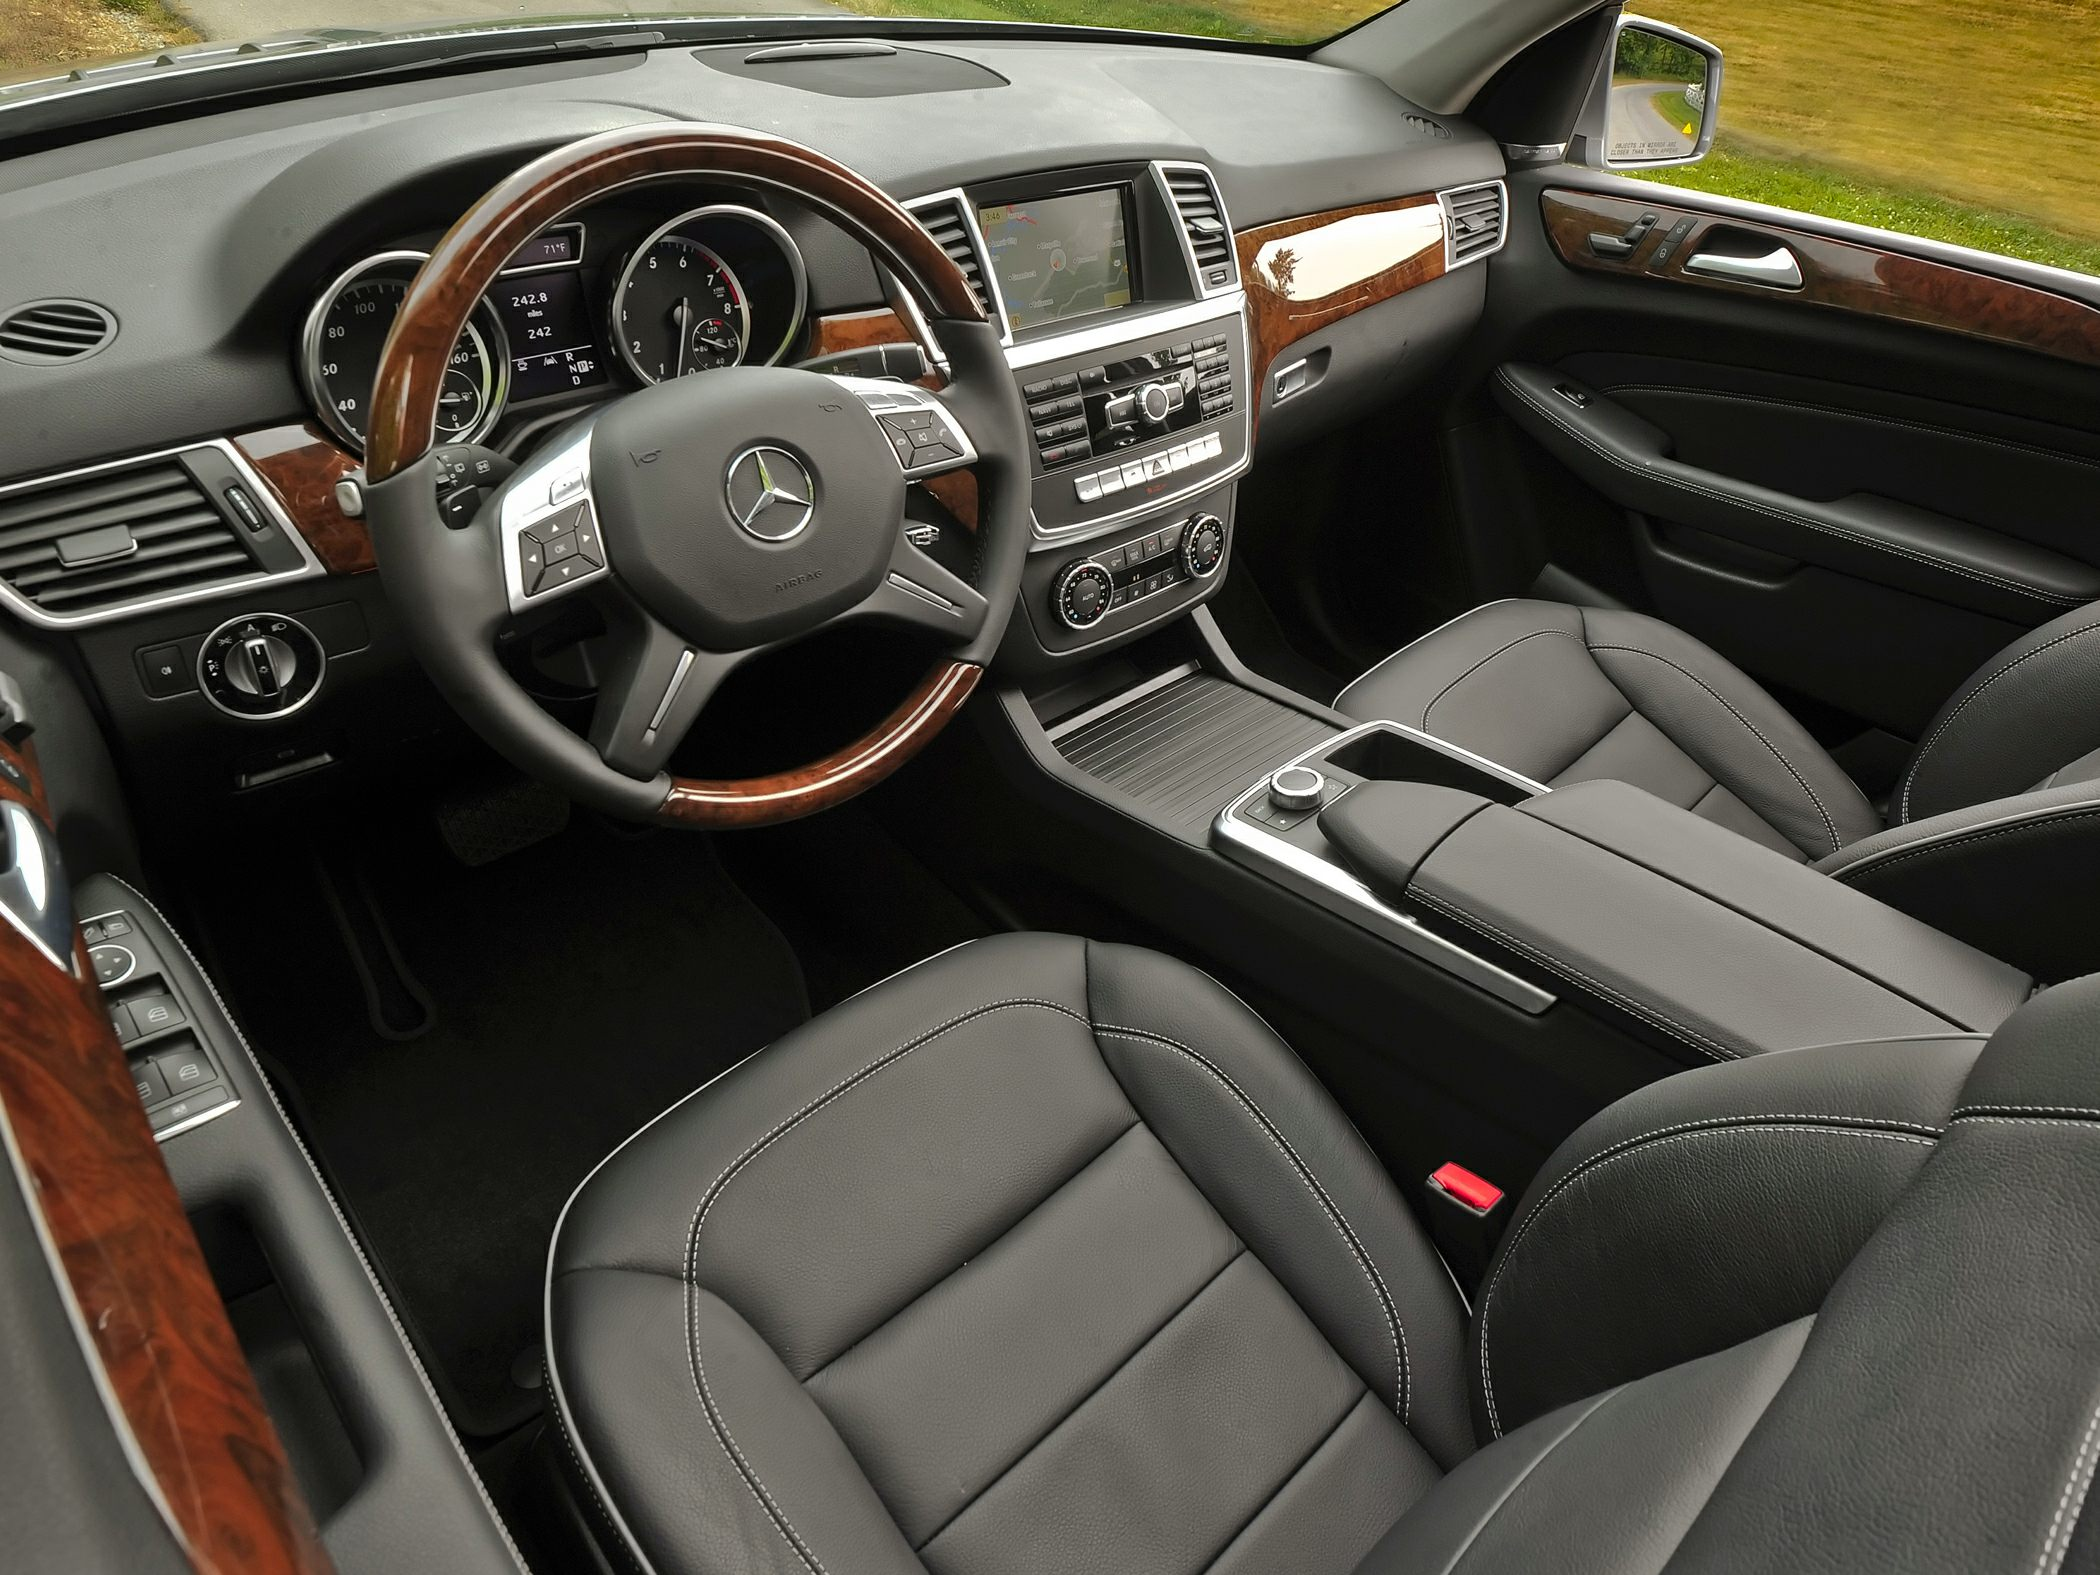 Mercedes-Benz ML350 Interior